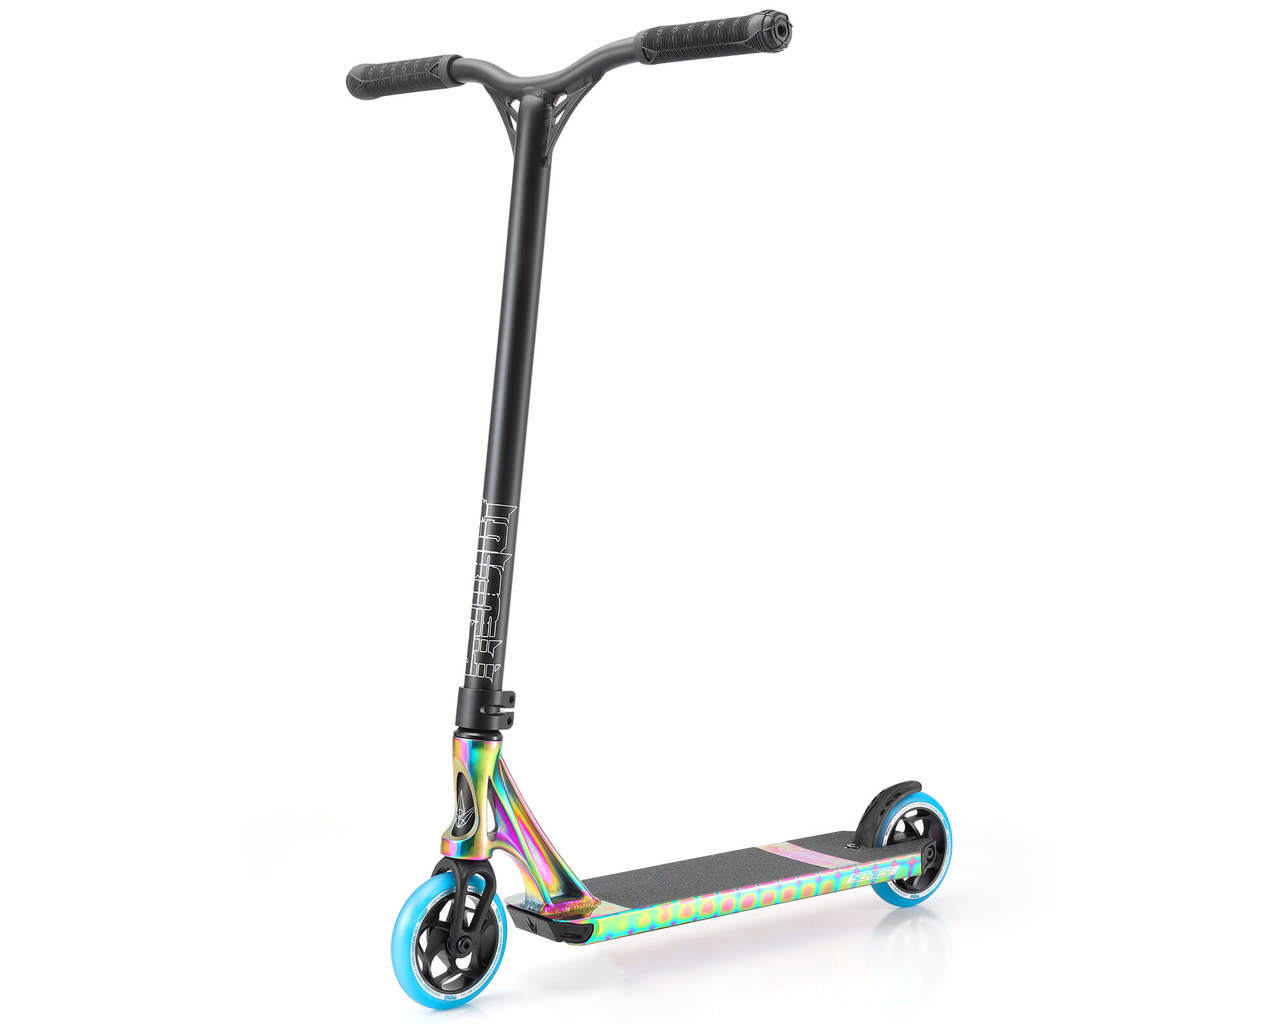 Blunt Prodigy S8 Complete Scooter - Oil Slick